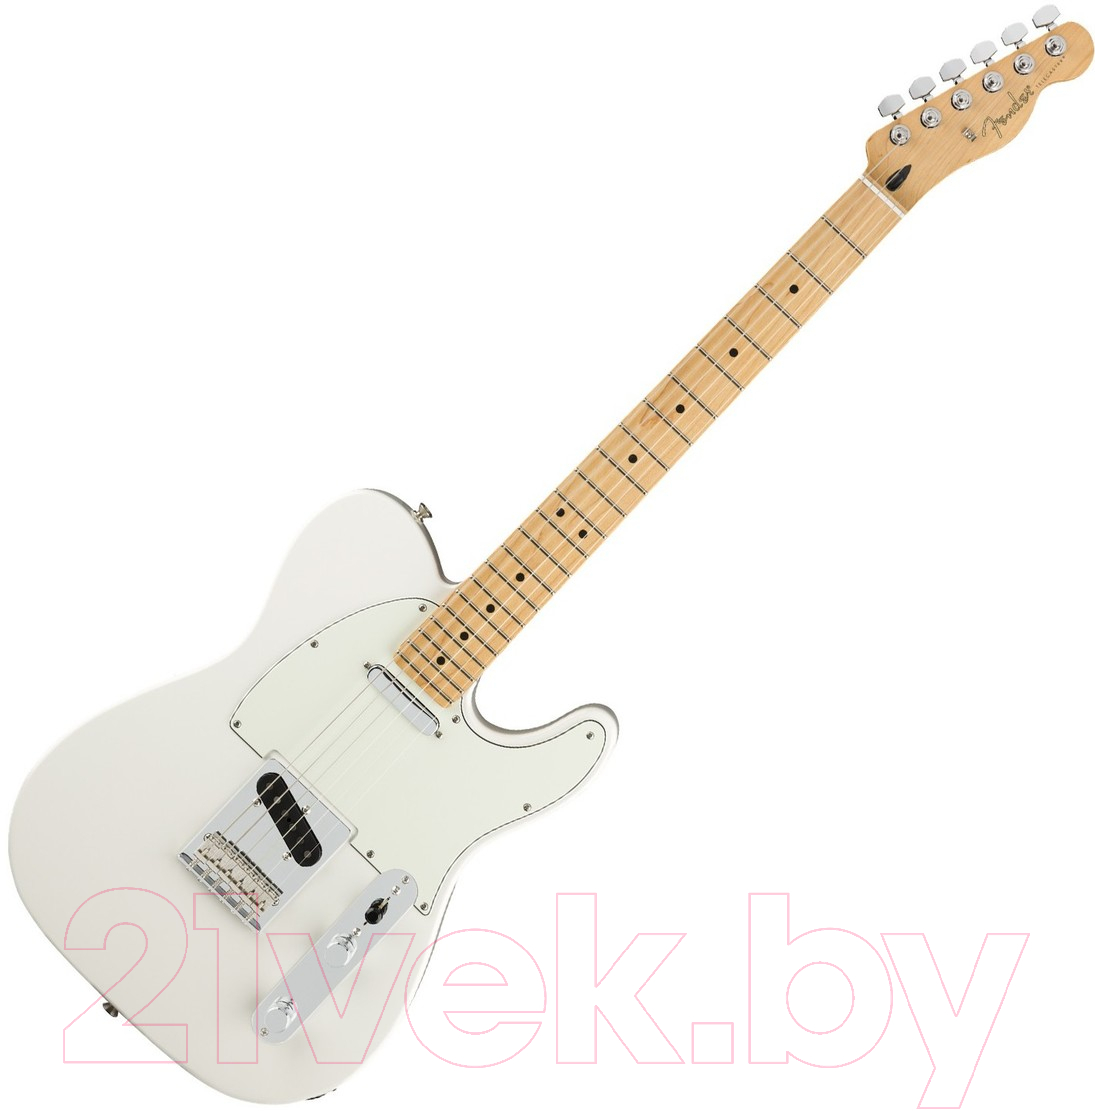 Купить Электрогитара Fender, Player Telecaster MN Polar White, Китай